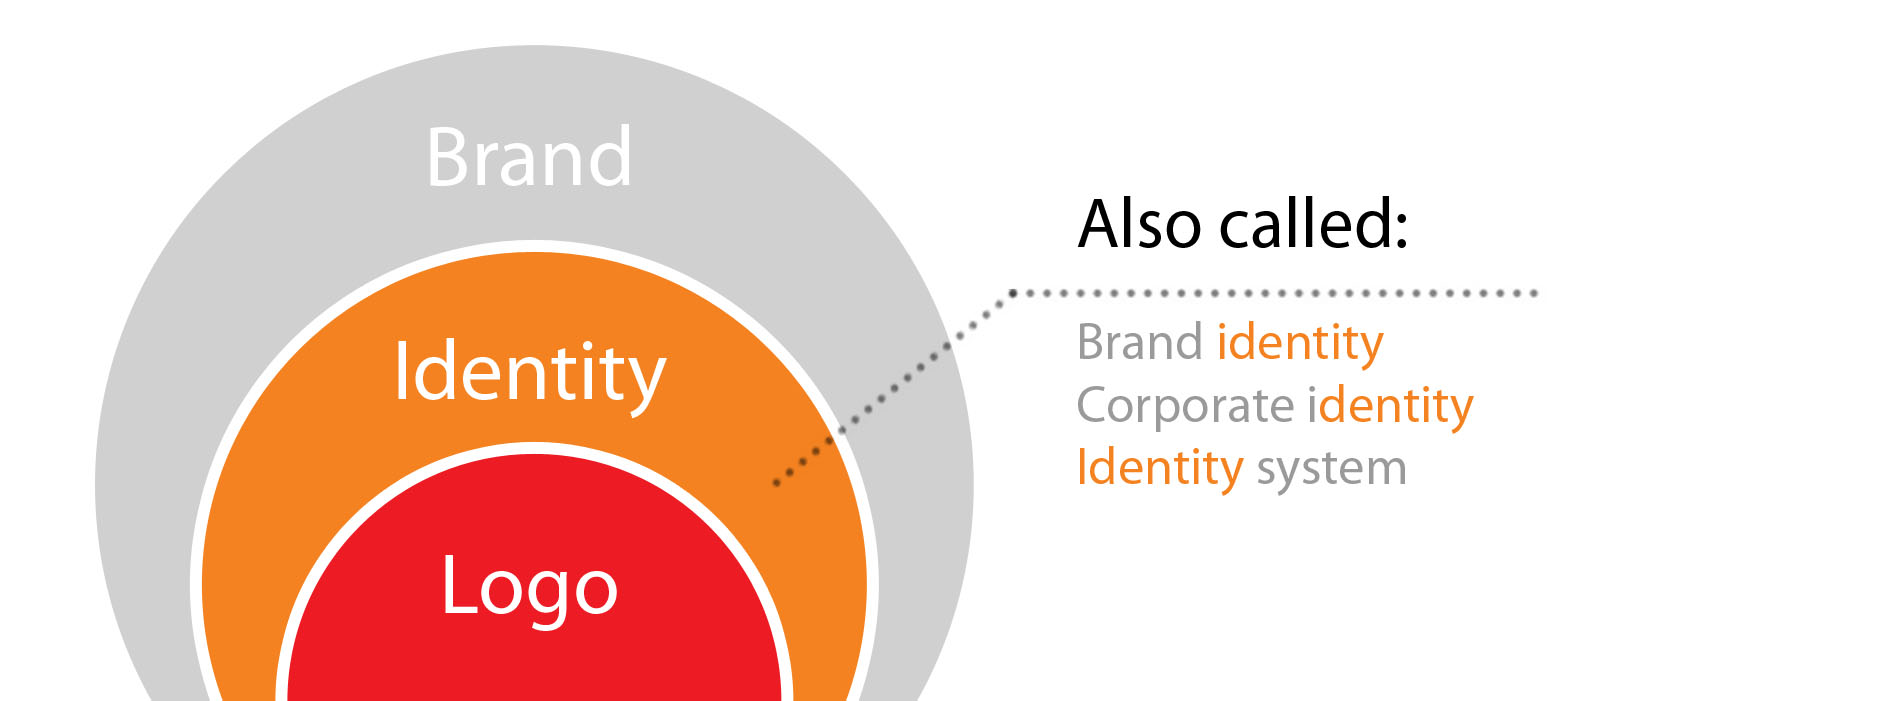 Identity design, brand, logo explained